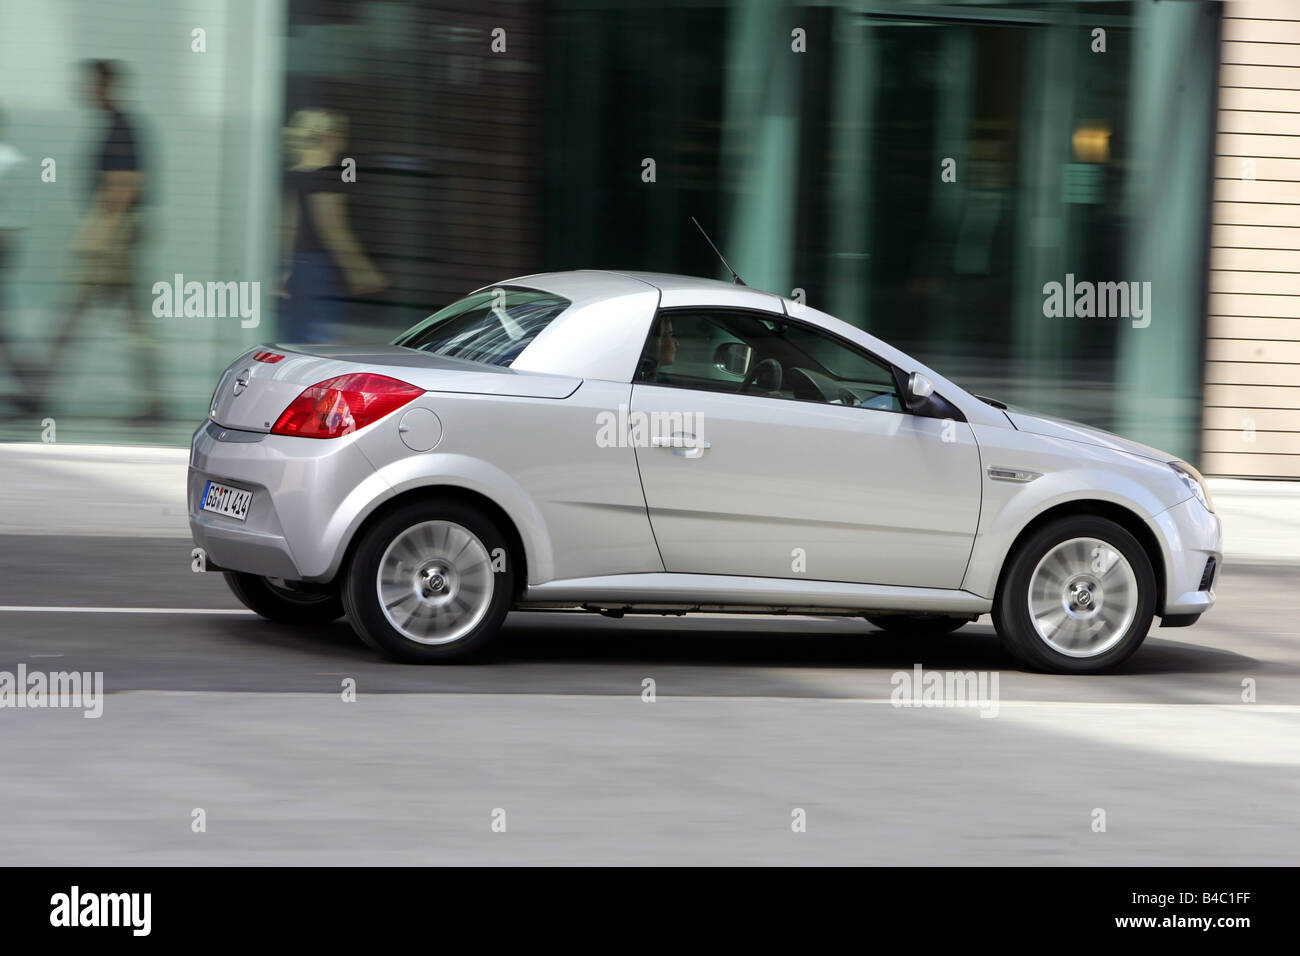 Opel Tigra High Resolution Stock Photography And Images Alamy